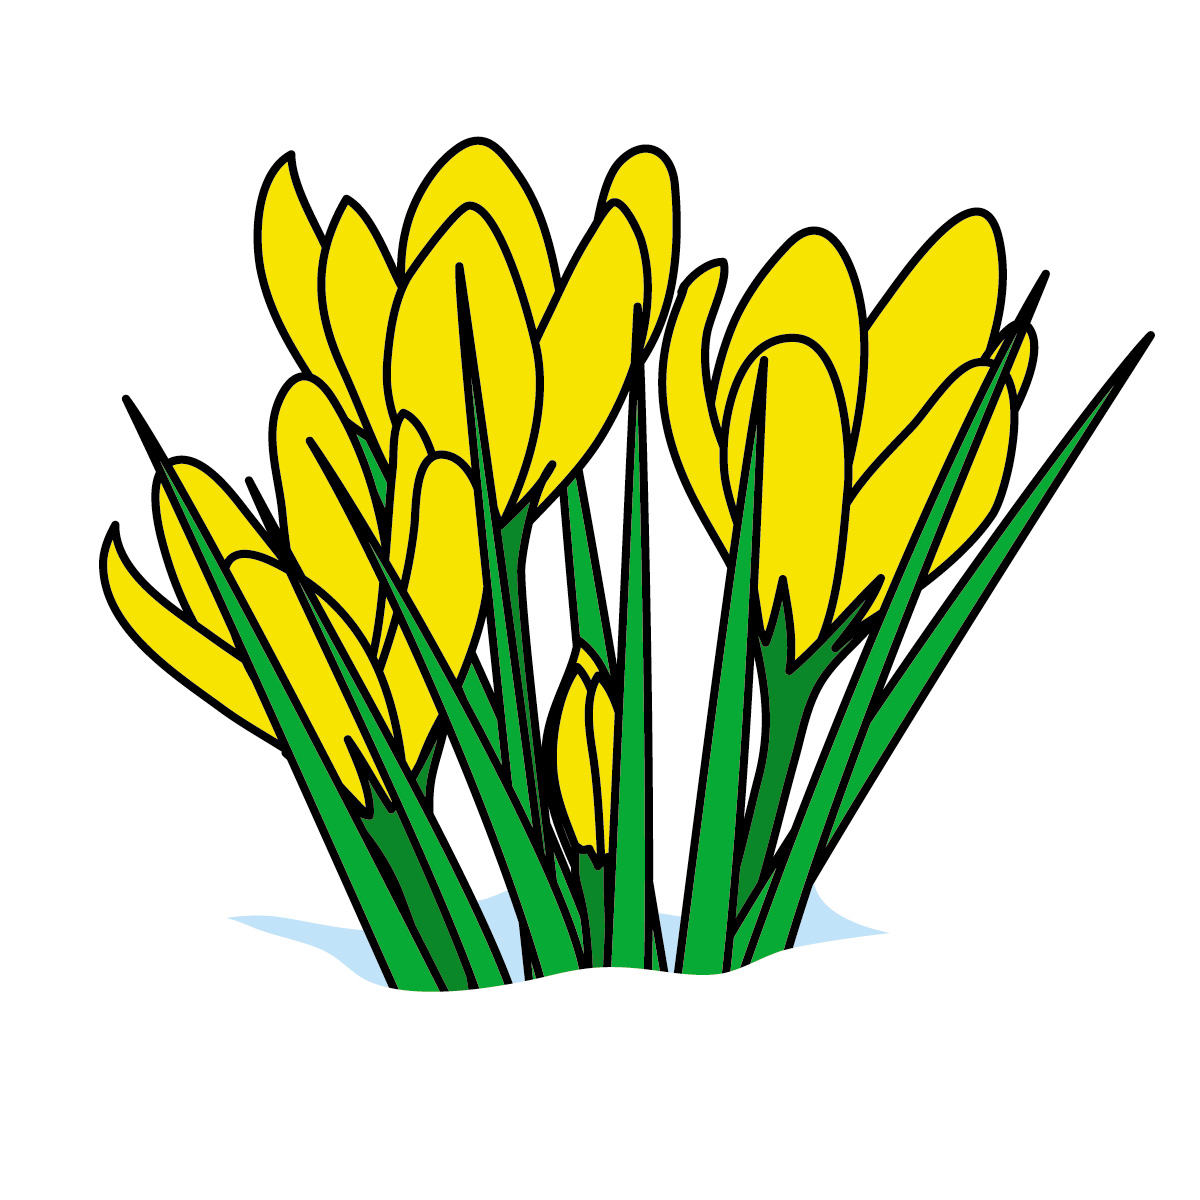 1200x1200 March Clip Art For Calendars Free Clipart Images 3